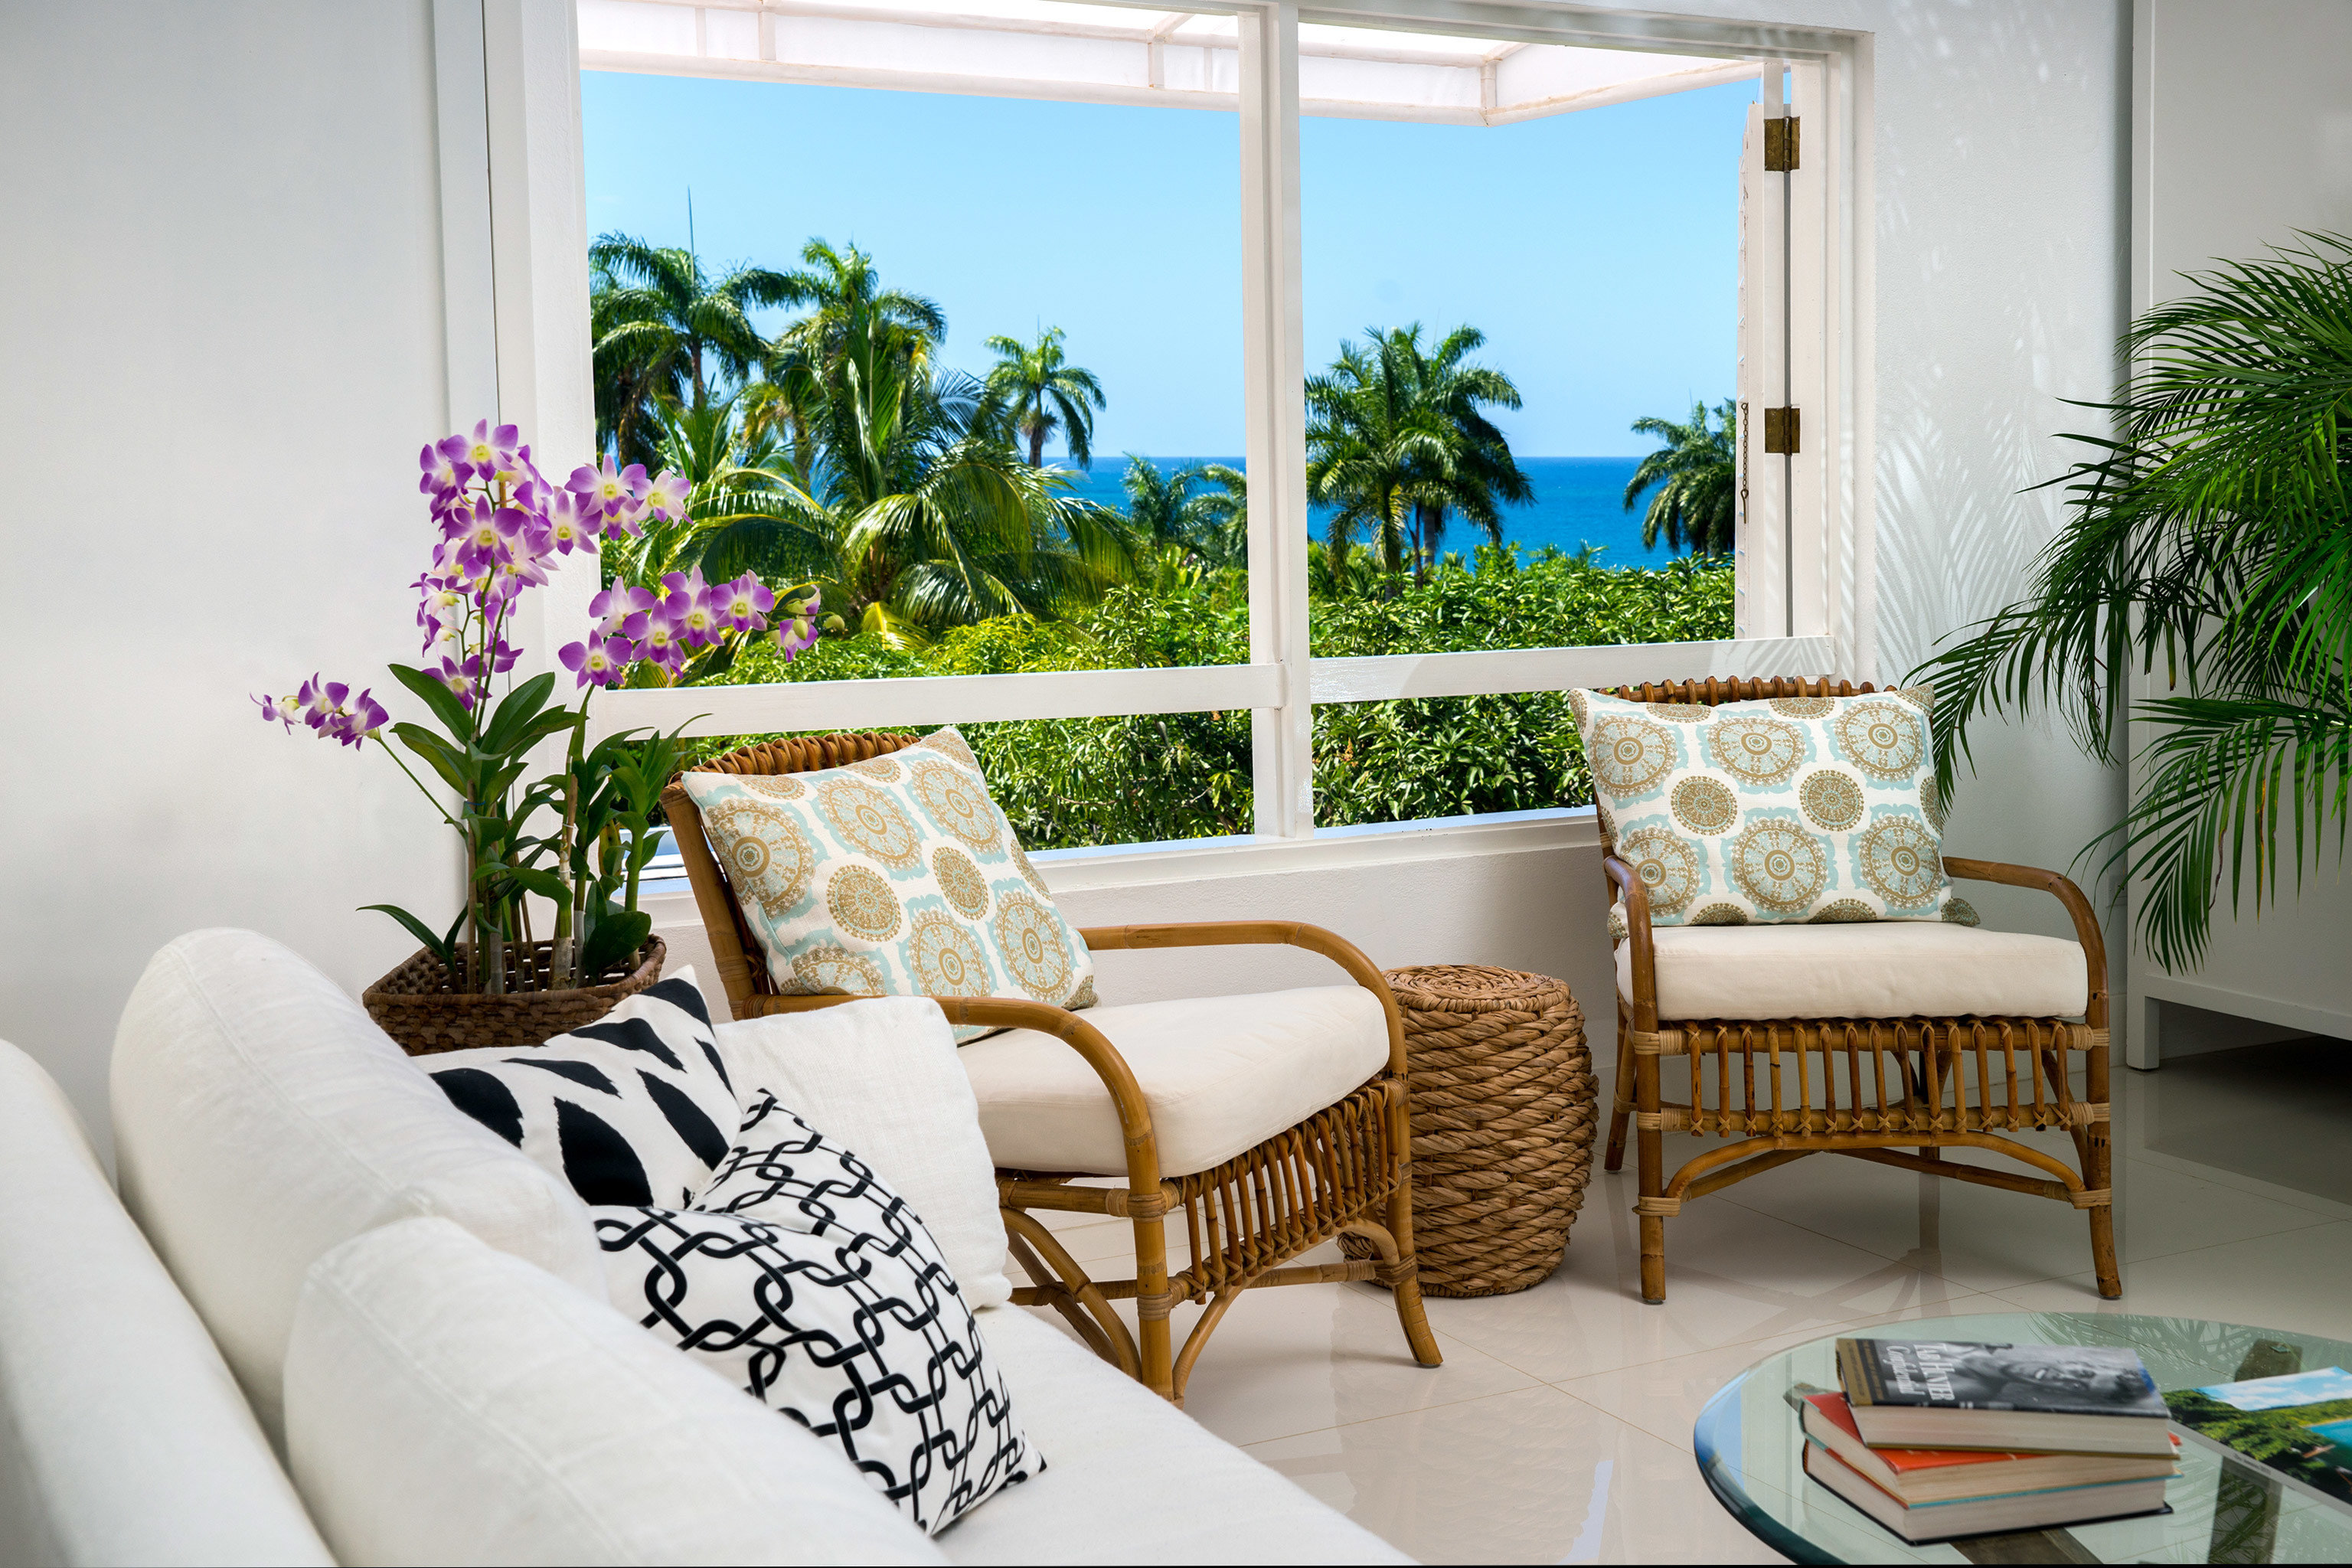 Hotels Living Luxury Ocean indoor room window property living room home condominium estate interior design Villa real estate furniture Design Balcony cottage plant Suite apartment window covering decorated dining table